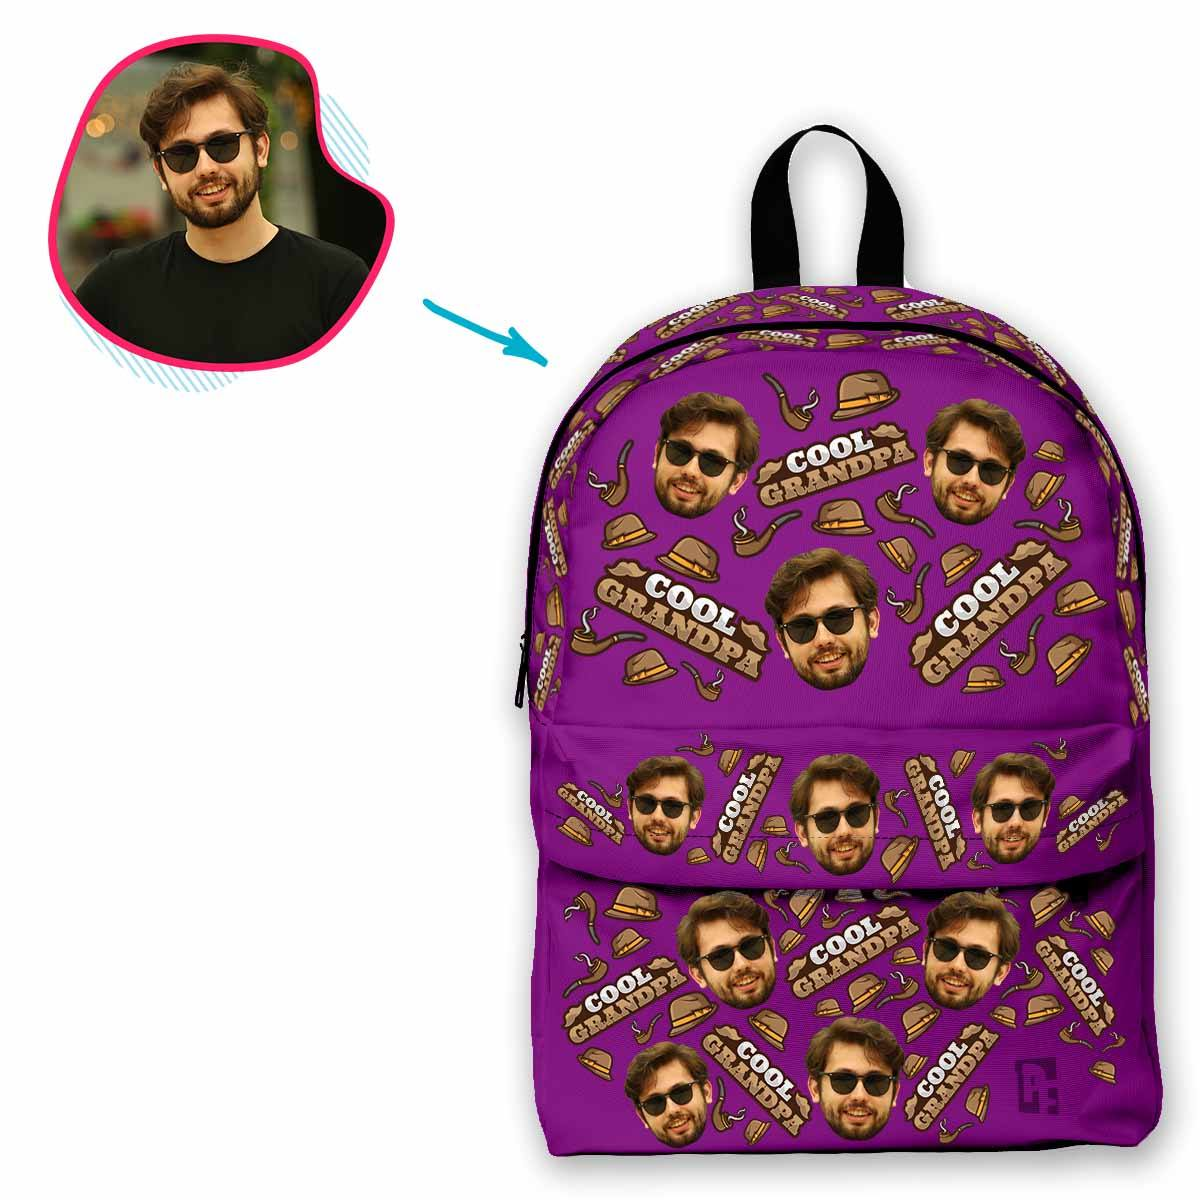 purple Cool Grandfather classic backpack personalized with photo of face printed on it